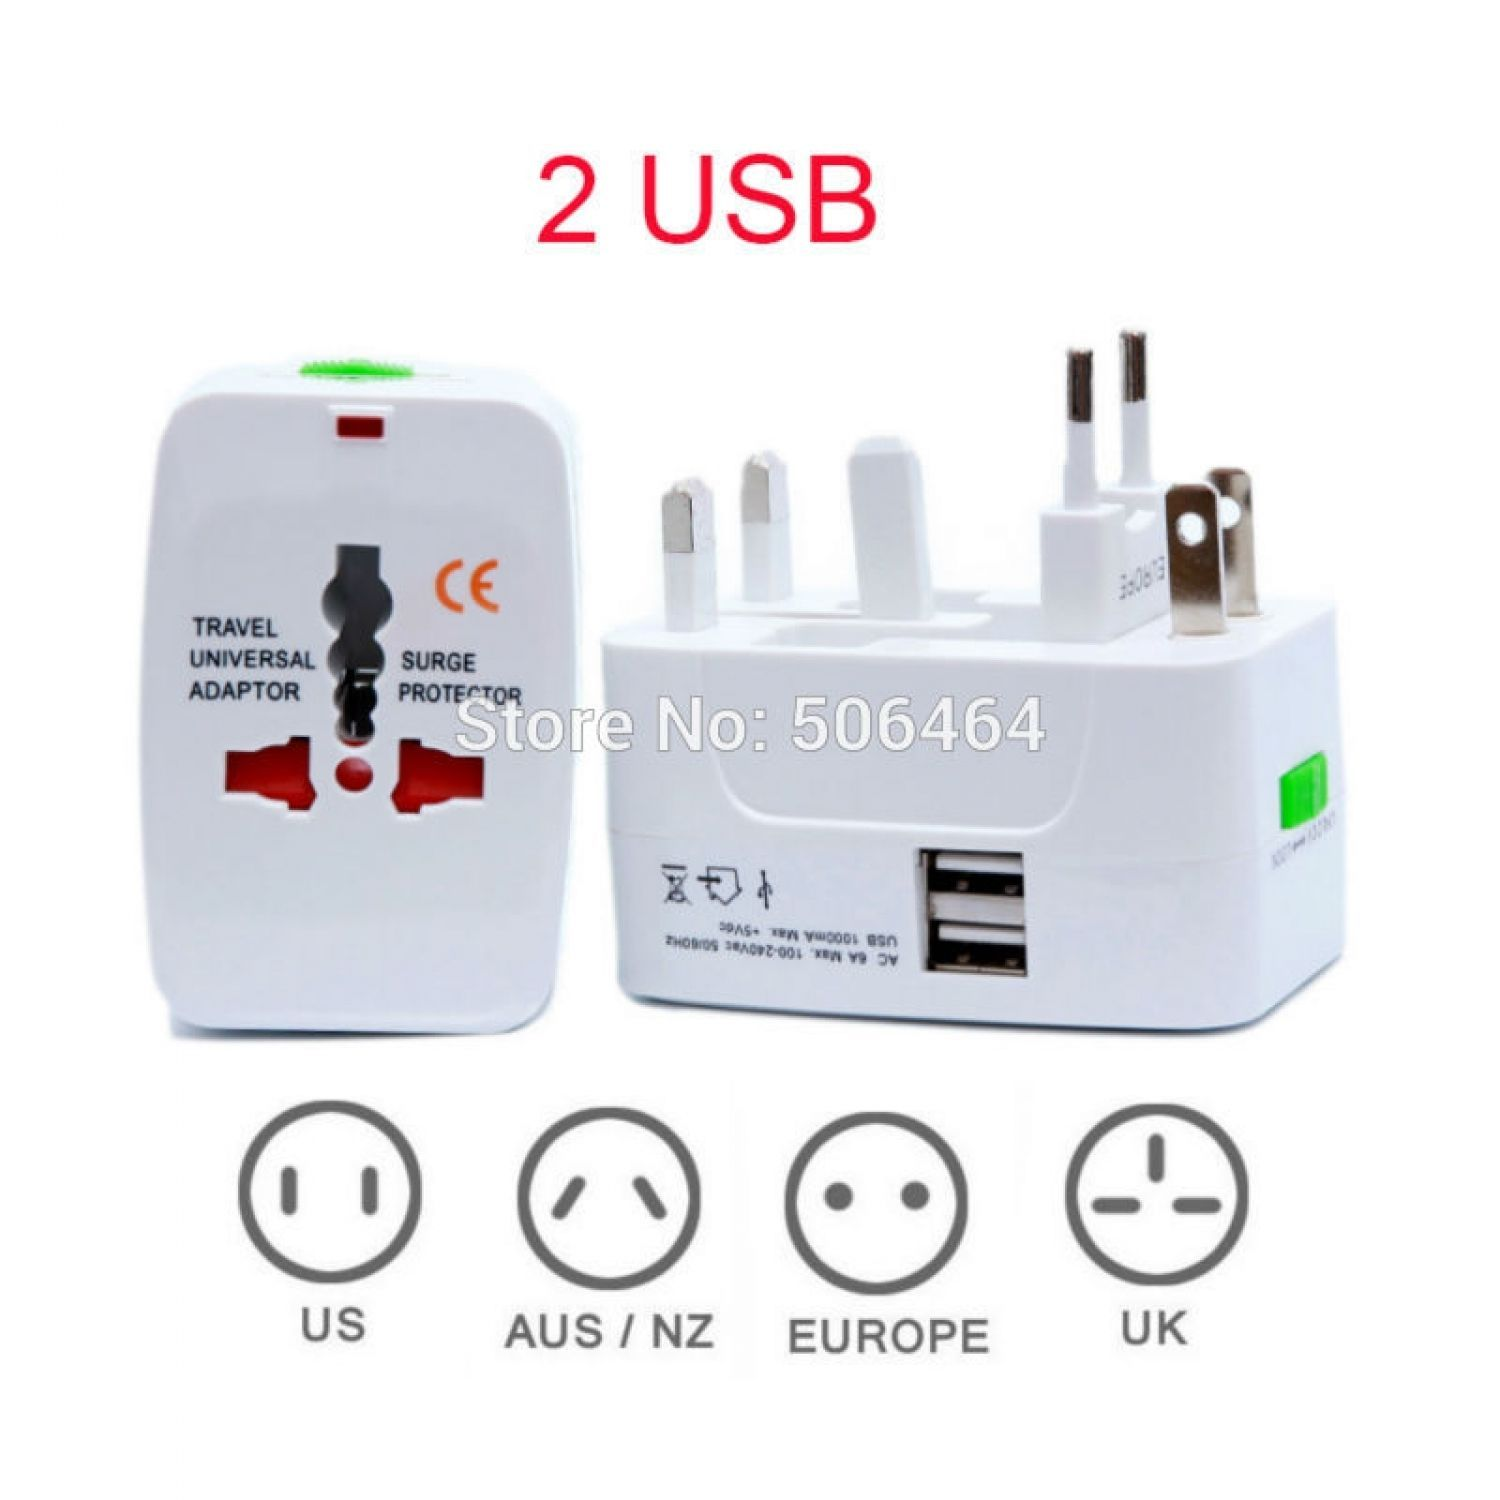 2 USB Port All in One Universal International Plug Adapter World Travel AC Power